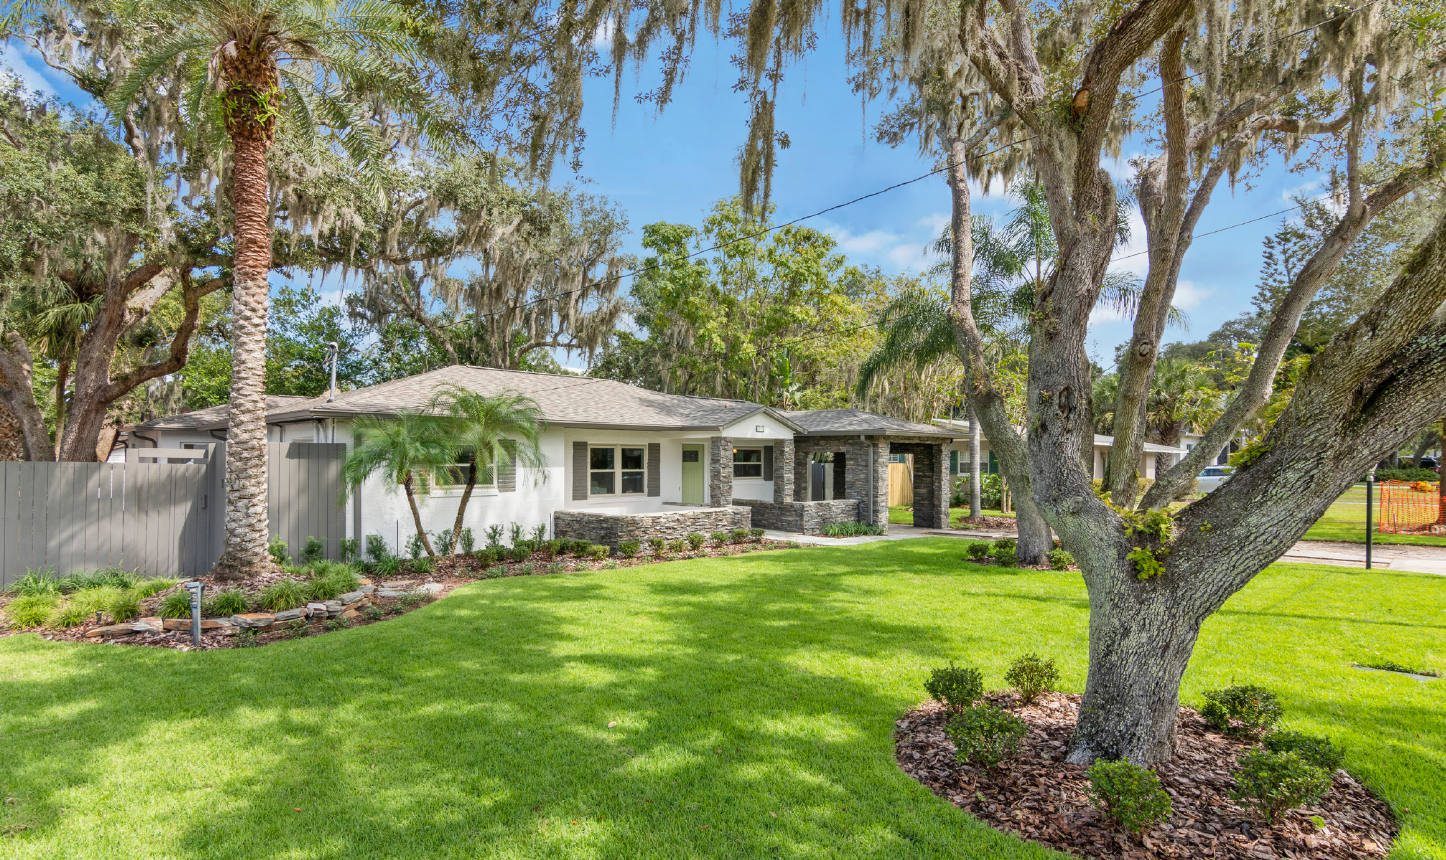 Winter Park OPEN HOUSE - Saturday Oct 26 - 2:00-4:00pm